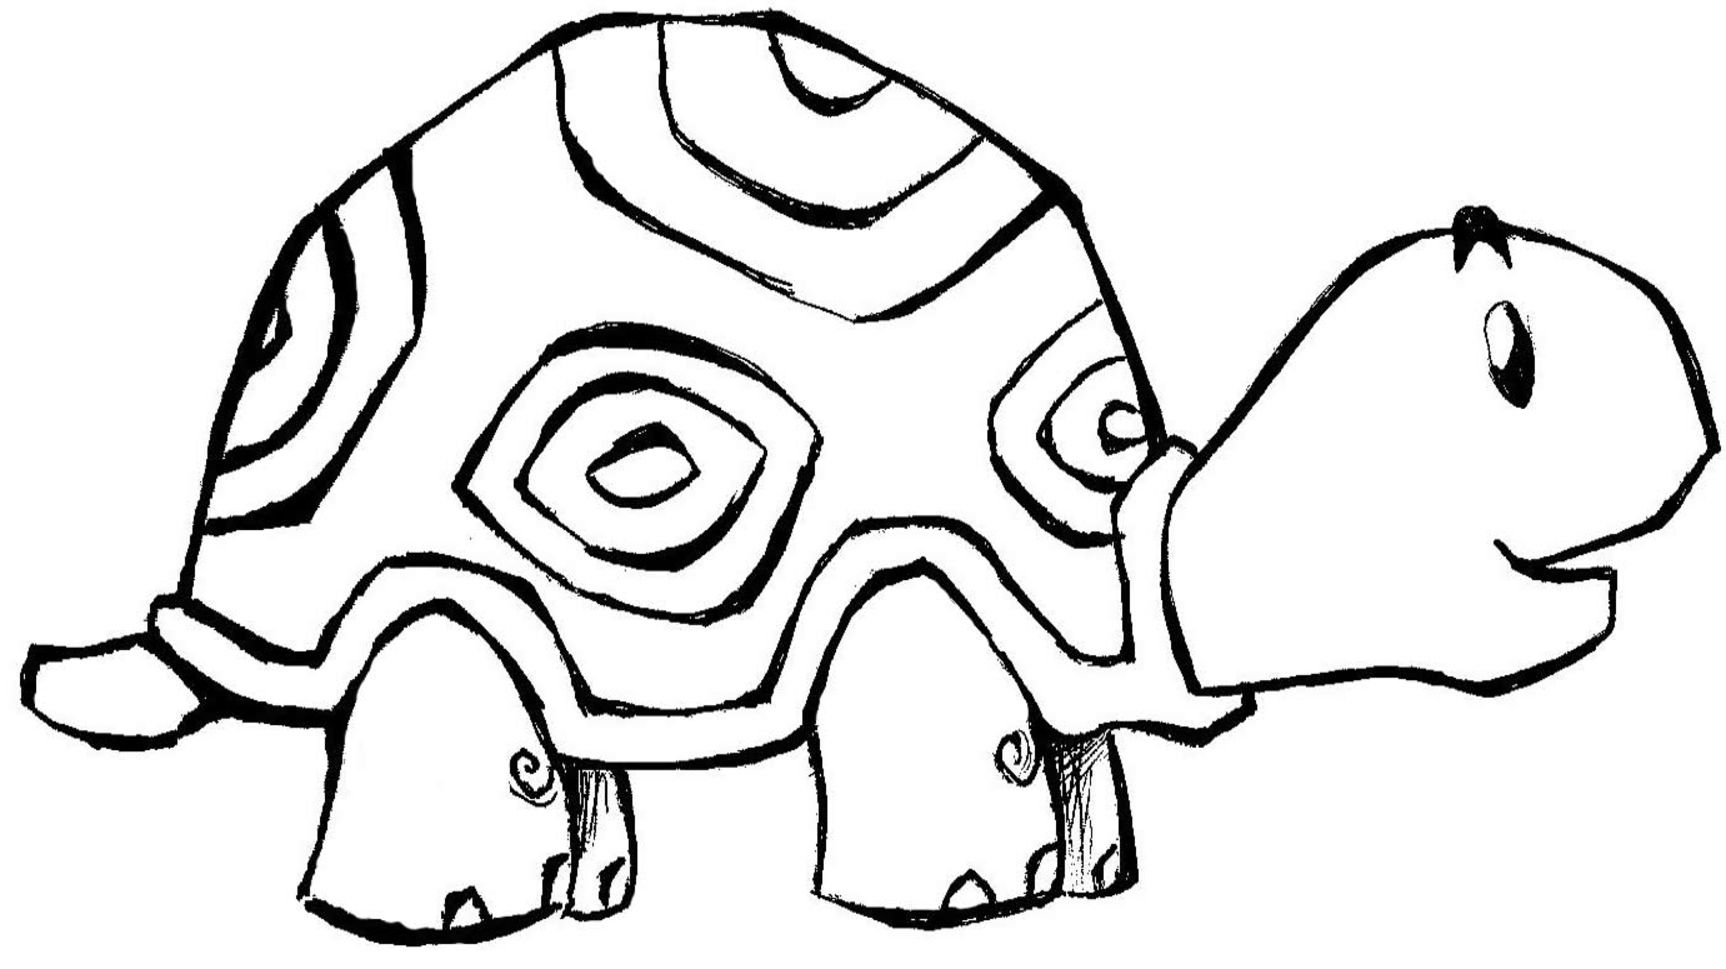 Coloring Now Blog Archive Animals Coloring Pages | coloring_pages ...